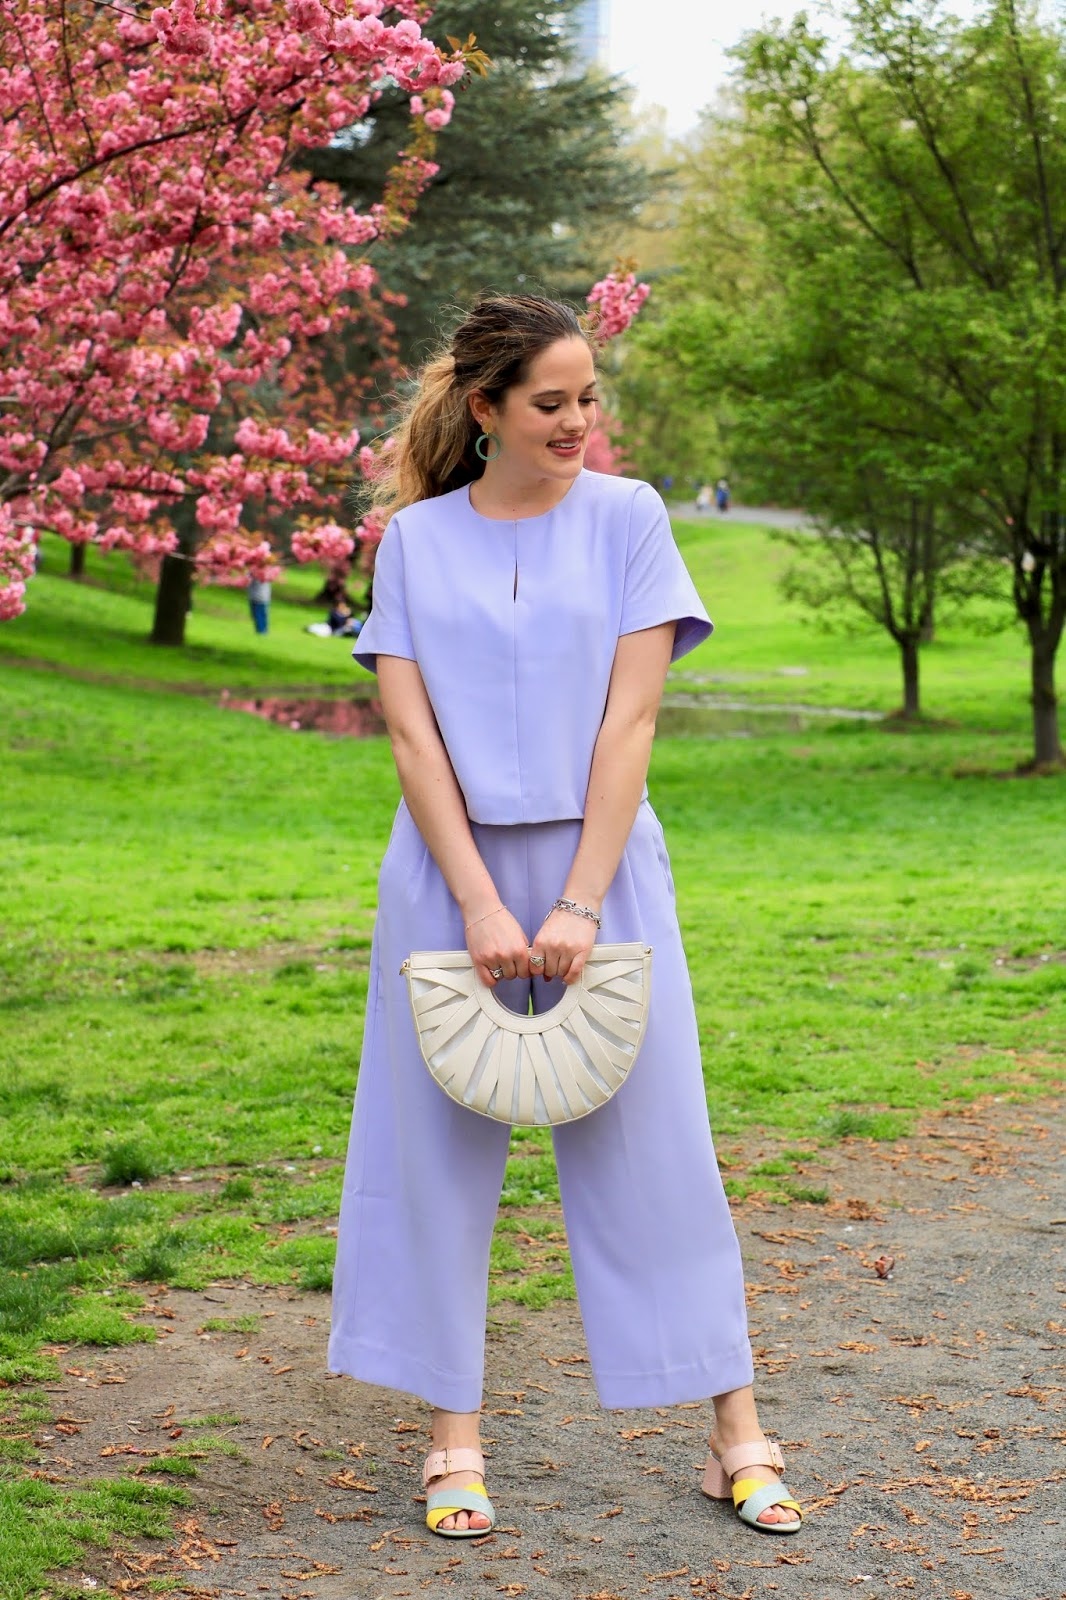 Nyc fashion blogger Kathleen Harper wearing a lavender pastel outfit